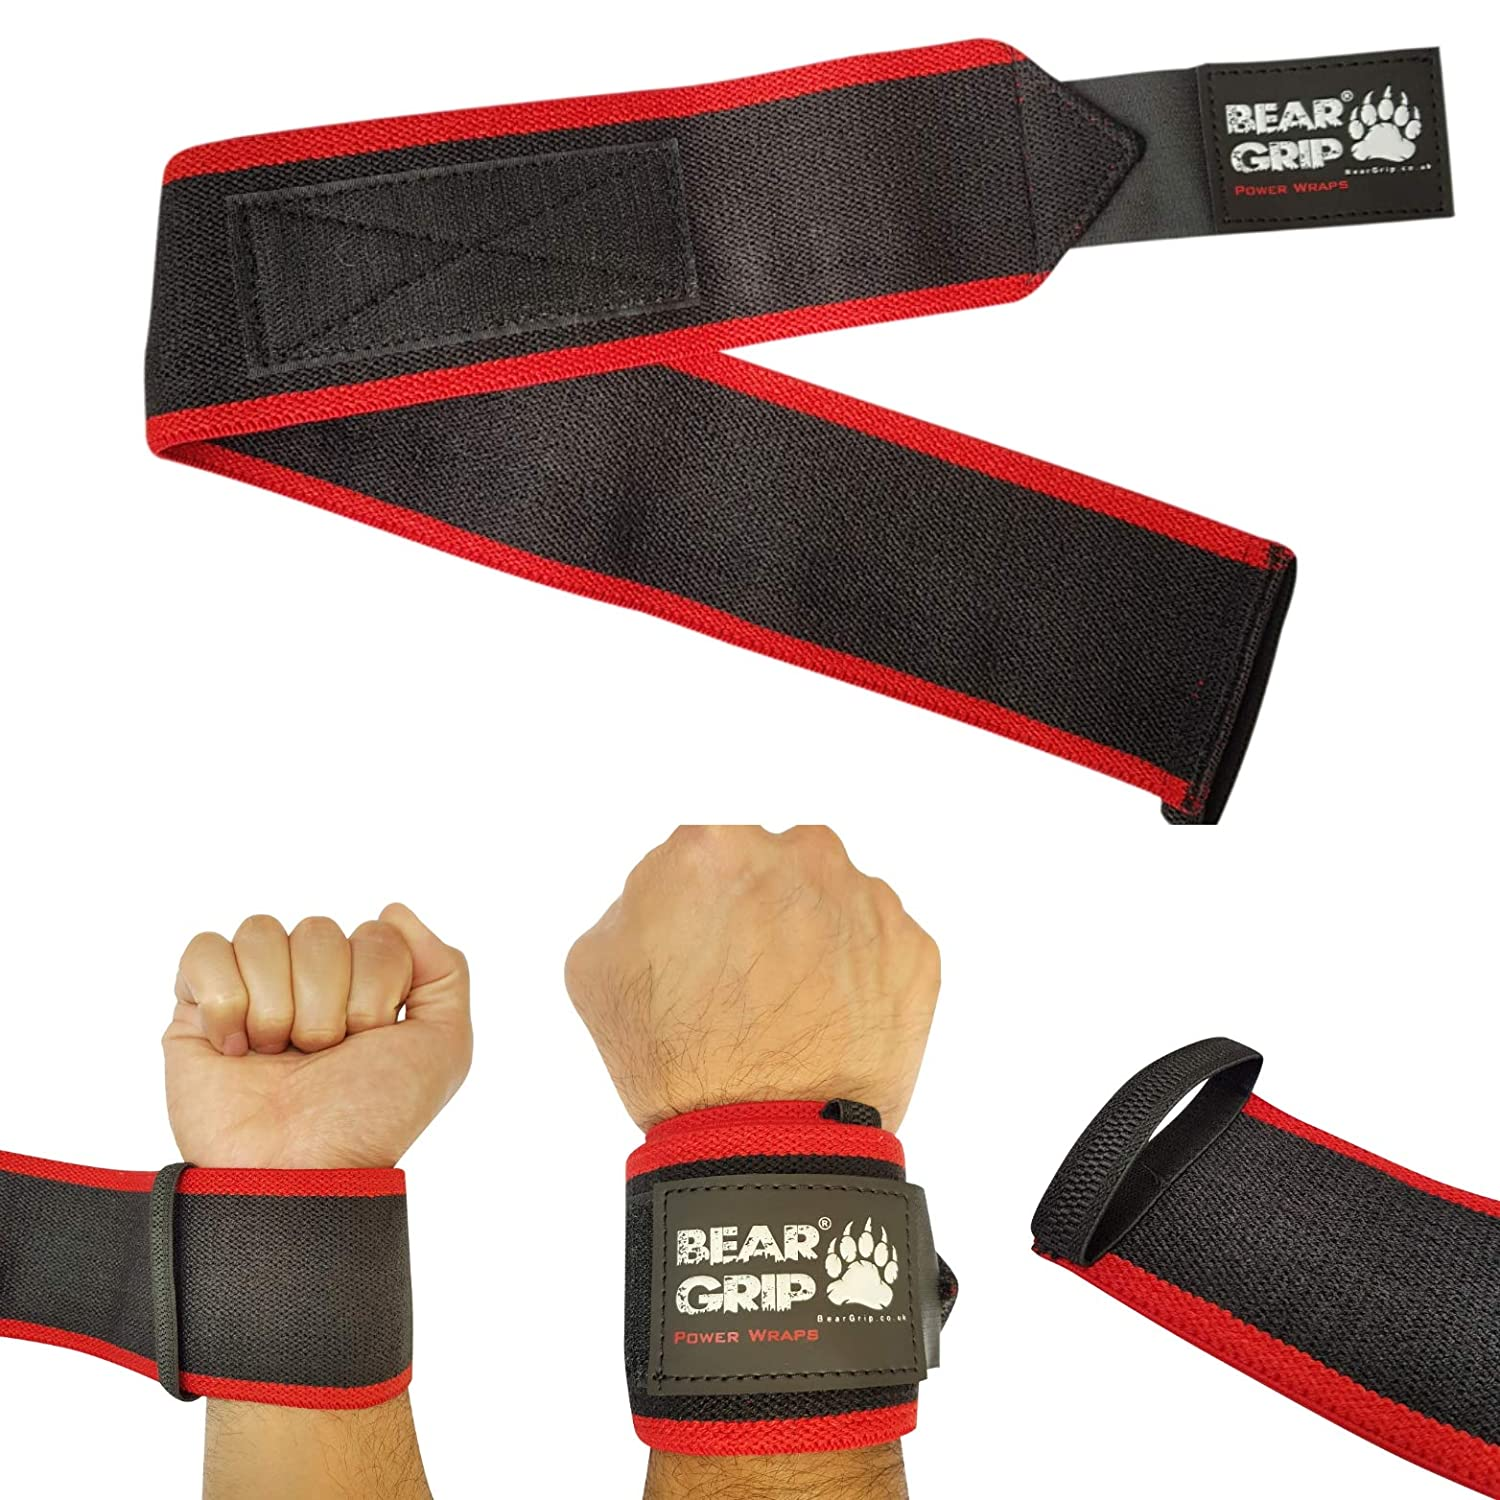 Bear Grip Premium Heavy Duty 24 Weight Lifting Wrist Wraps Red Bodybuilding Crossfit Powerlifting Strongman Black